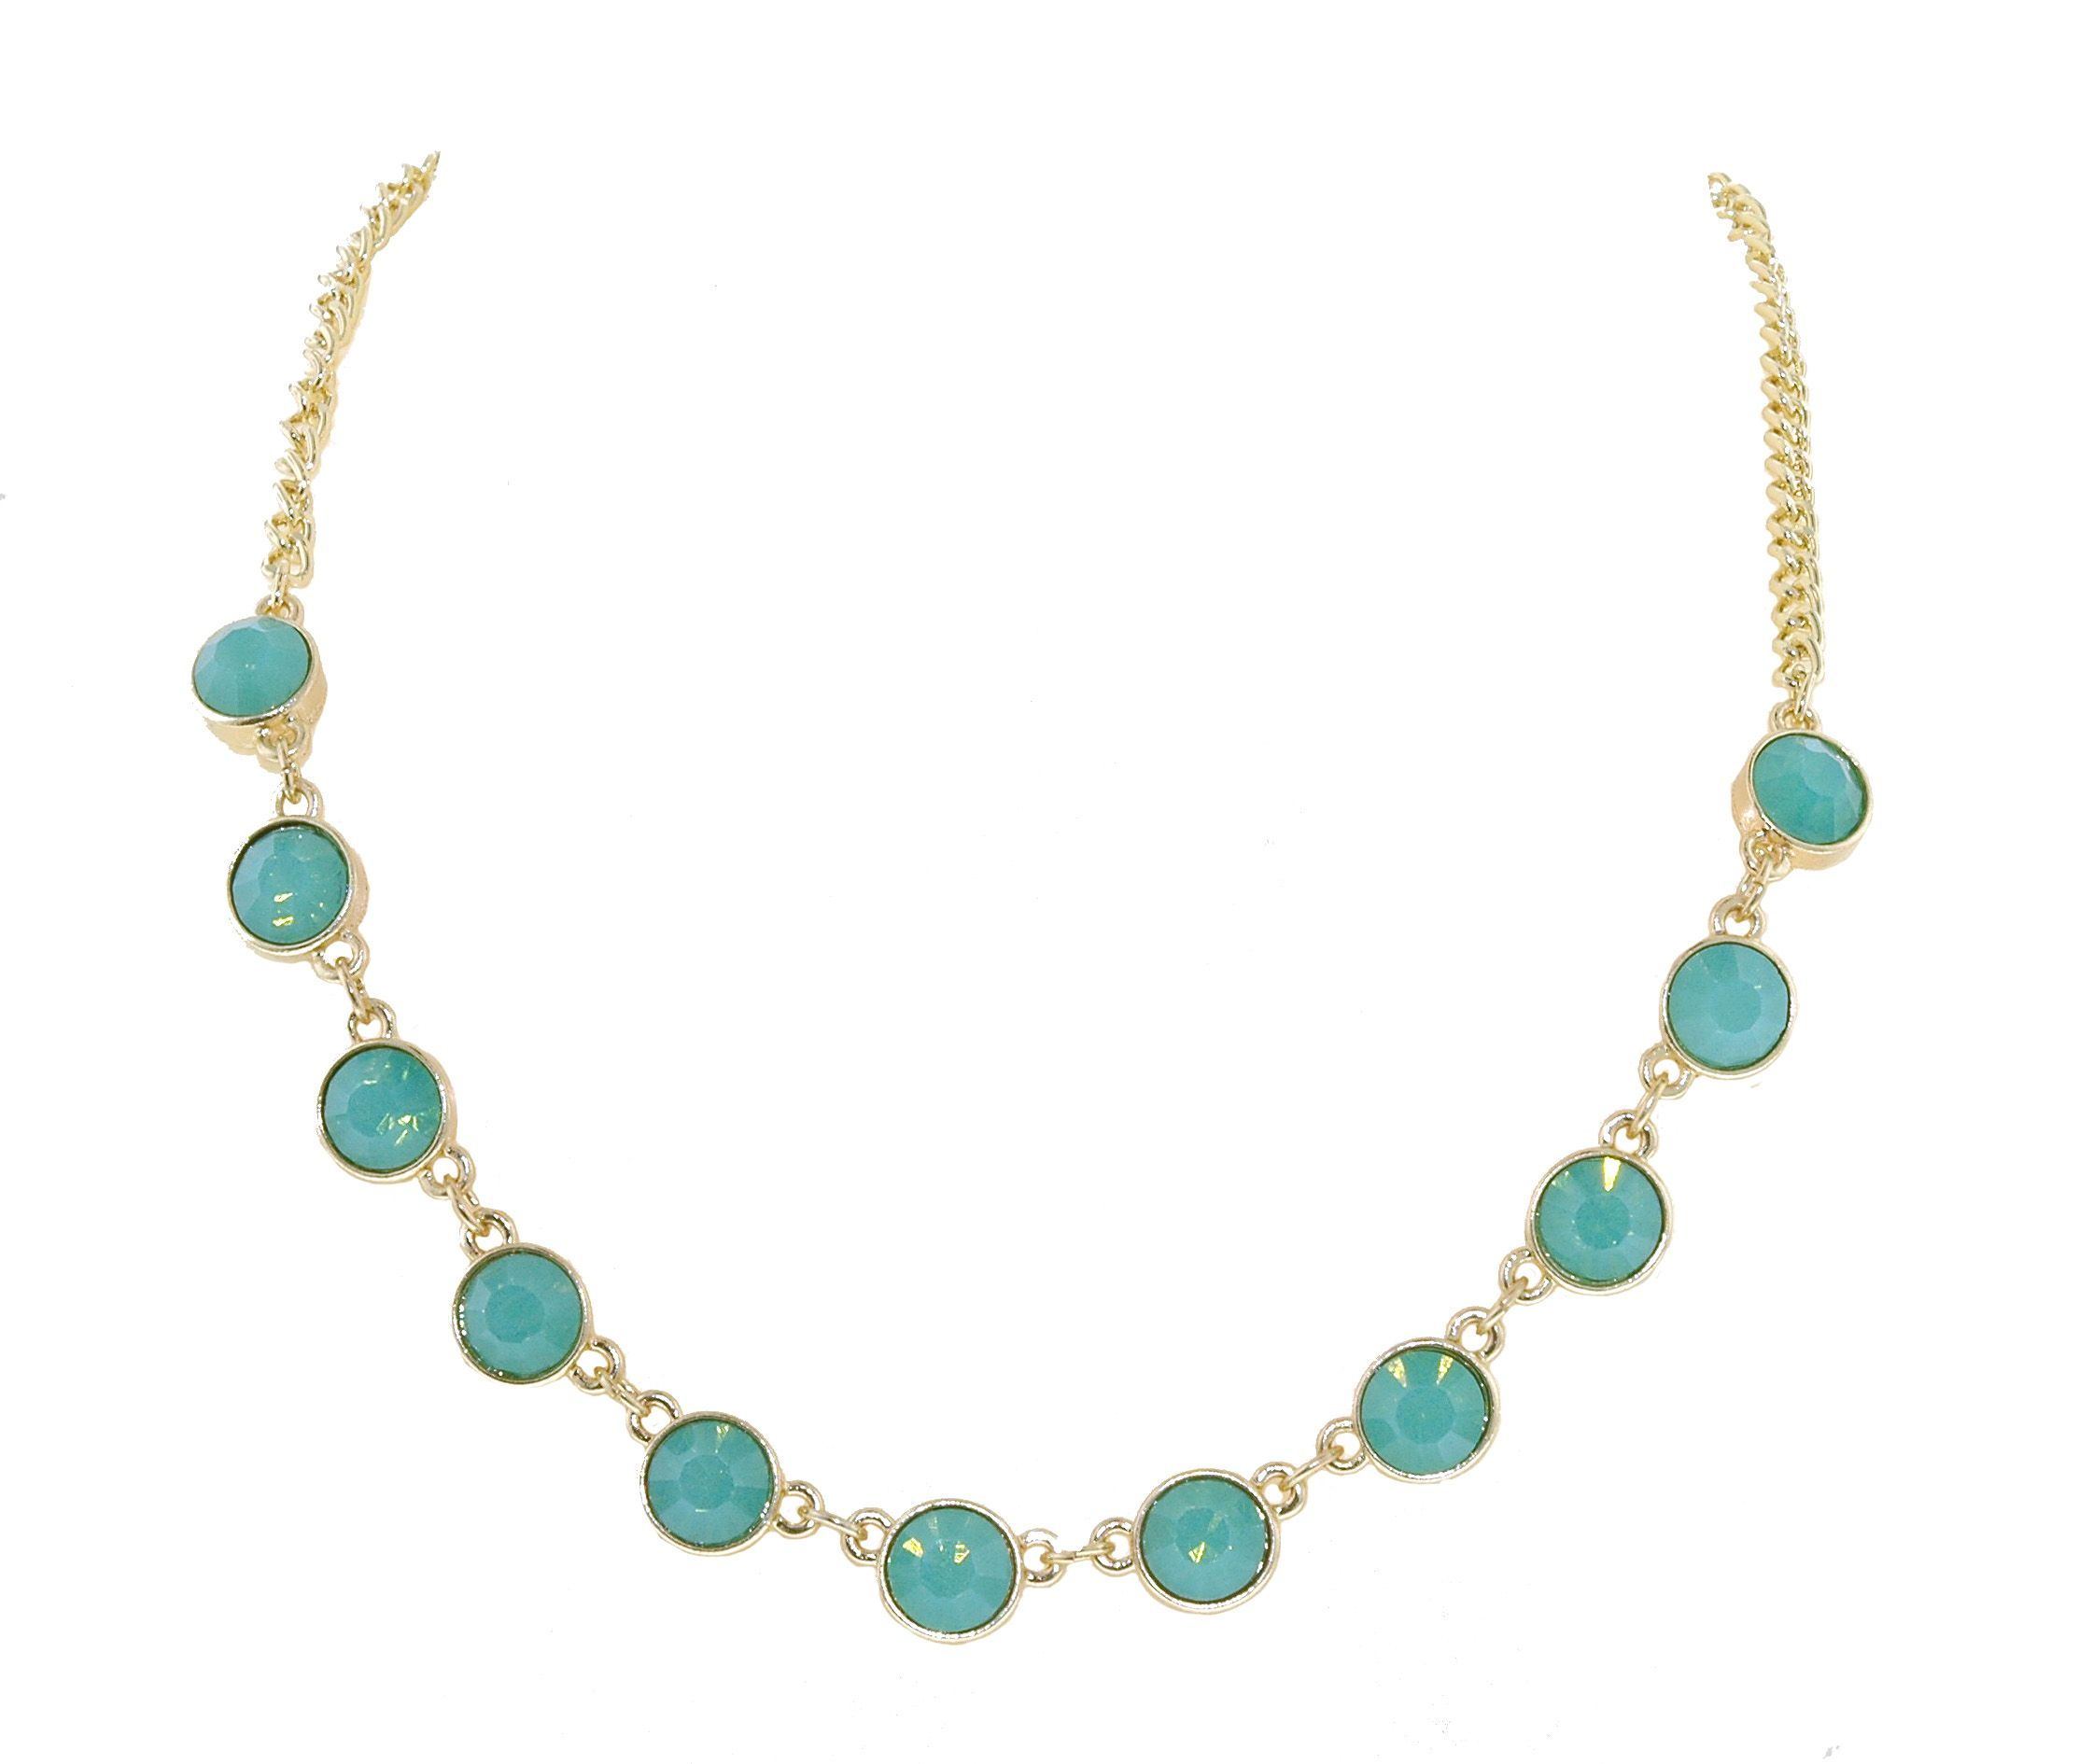 Gold & pacific green opal collar necklace